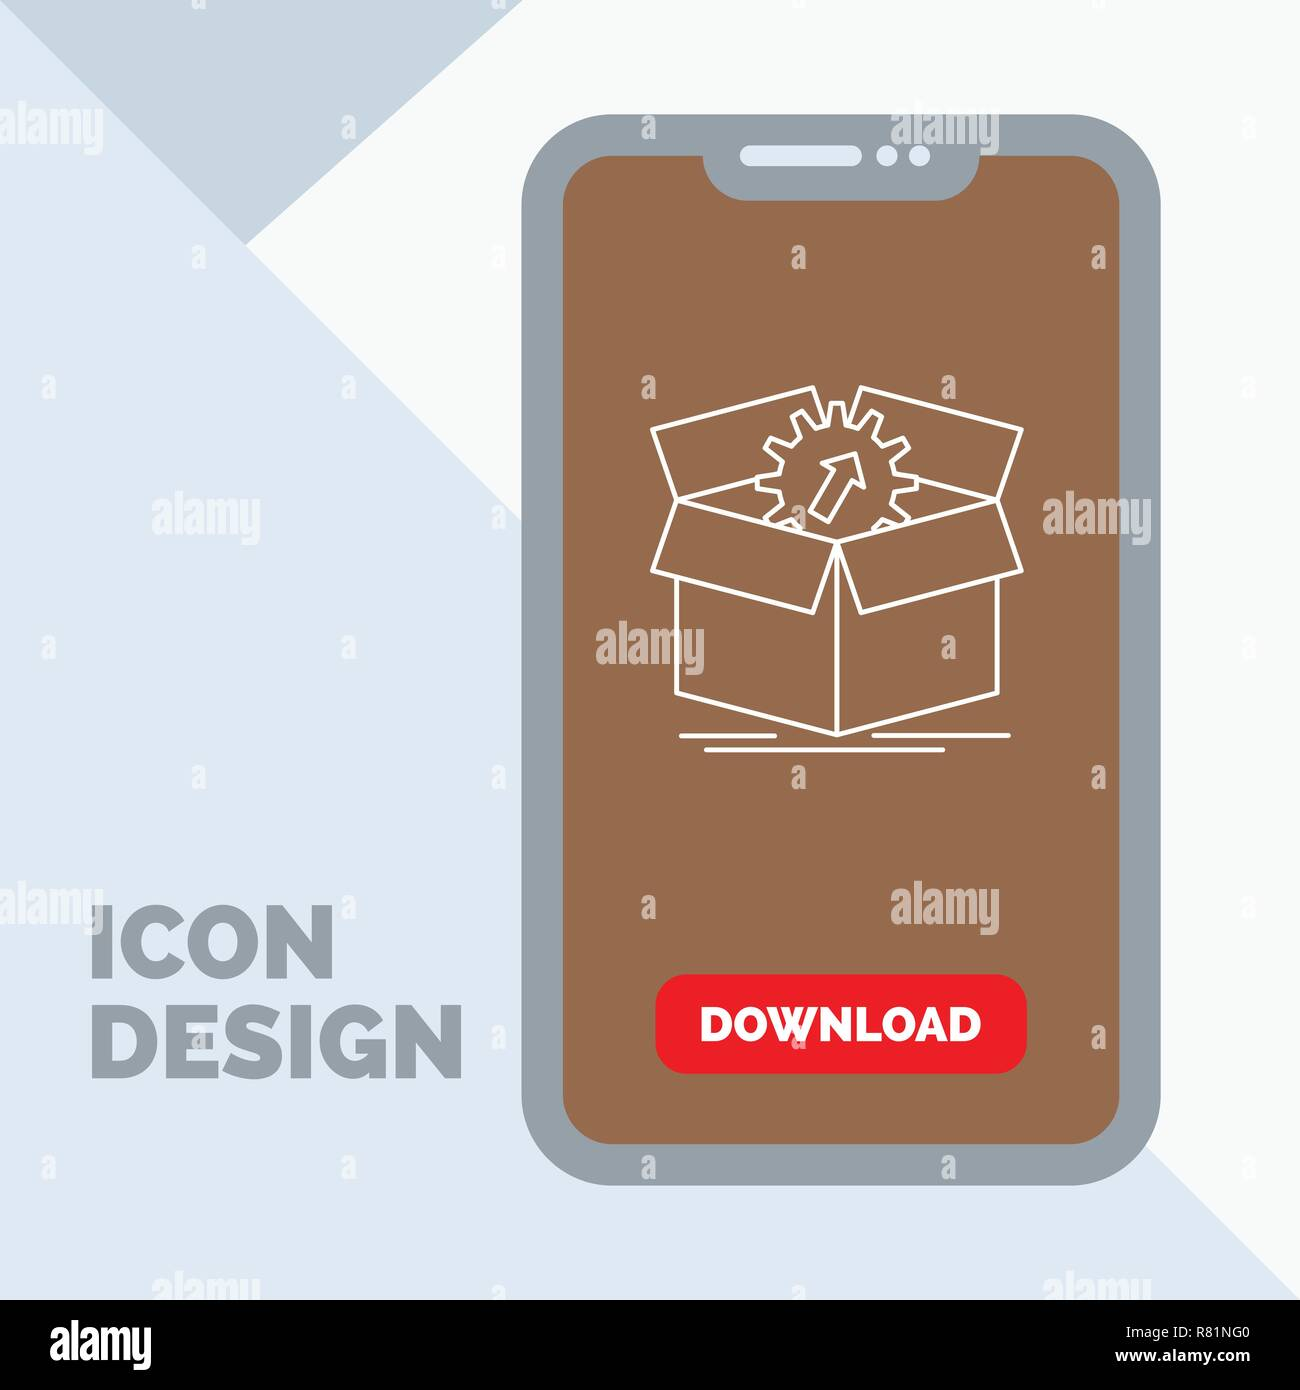 upload, performance, productivity, progress, work Line Icon in Mobile for Download Page - Stock Vector